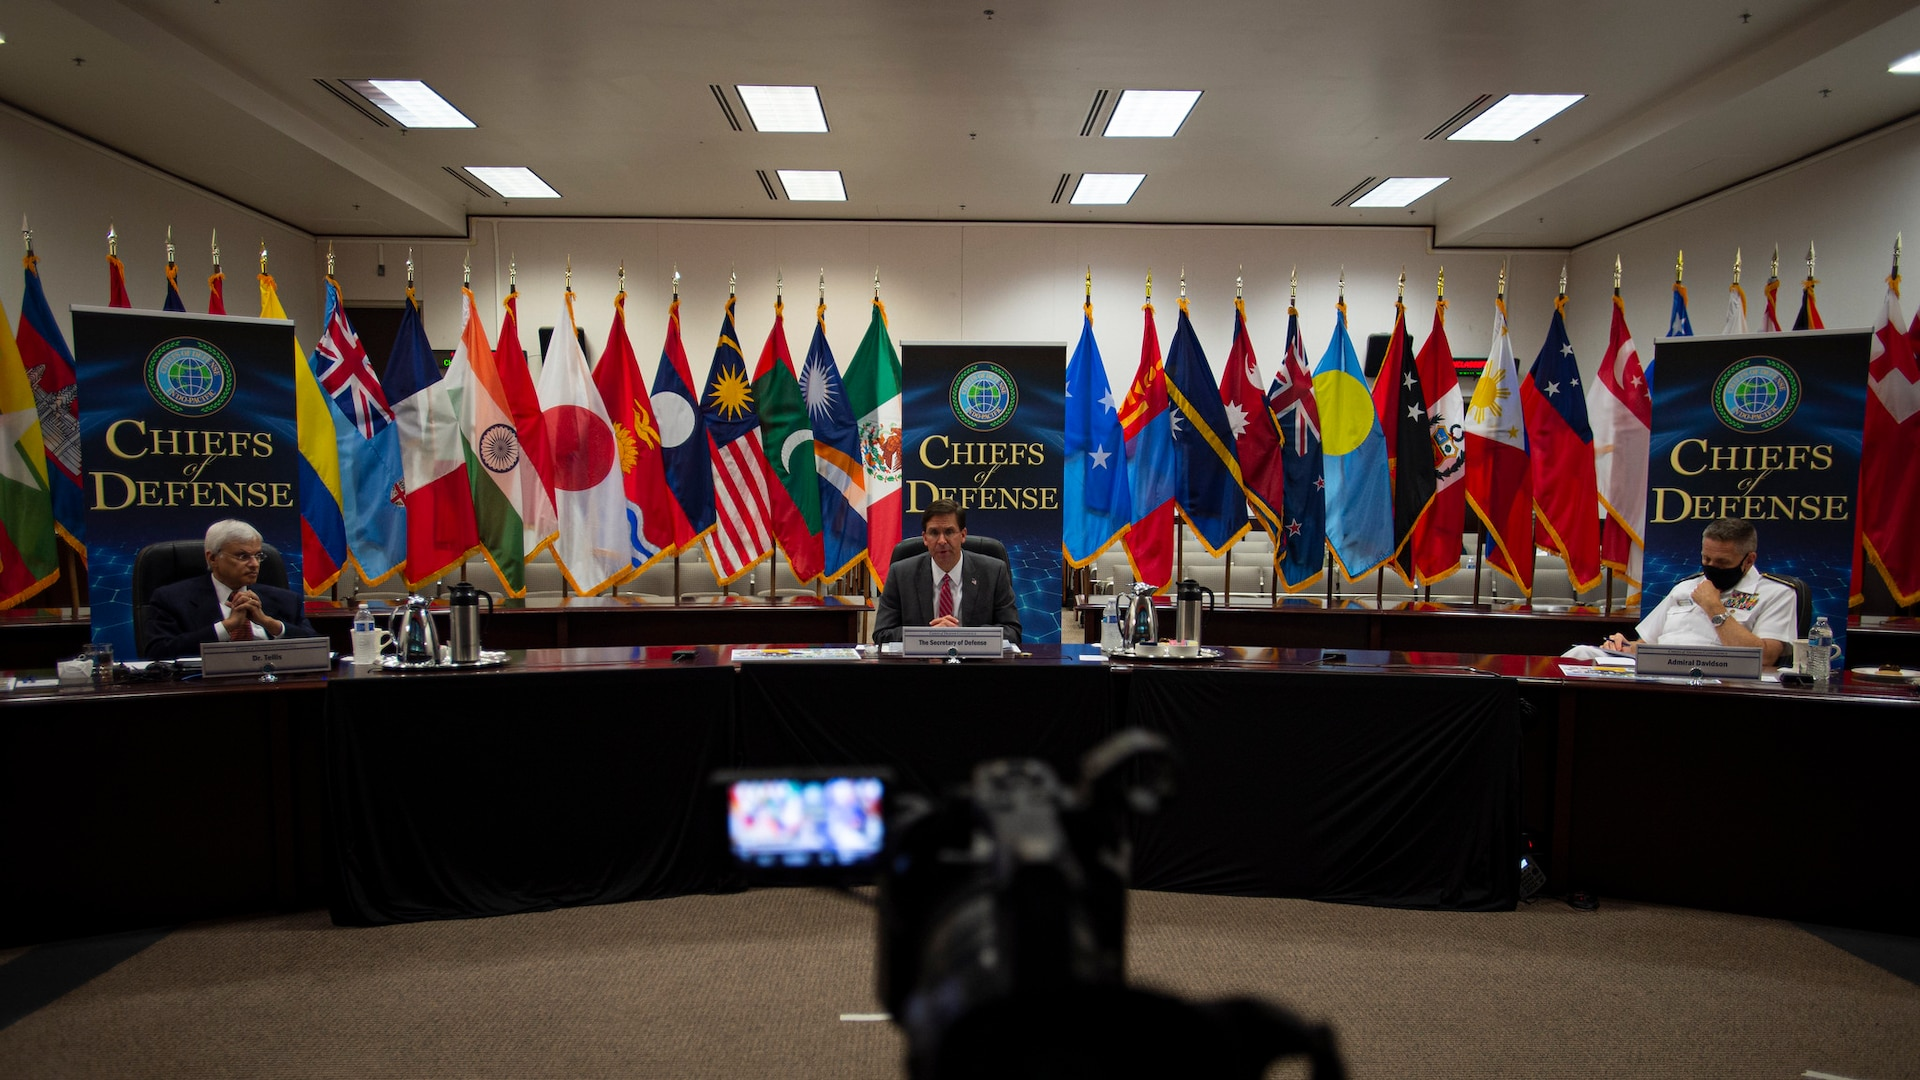 The annual Indo-Pacific Chiefs of Defense conference